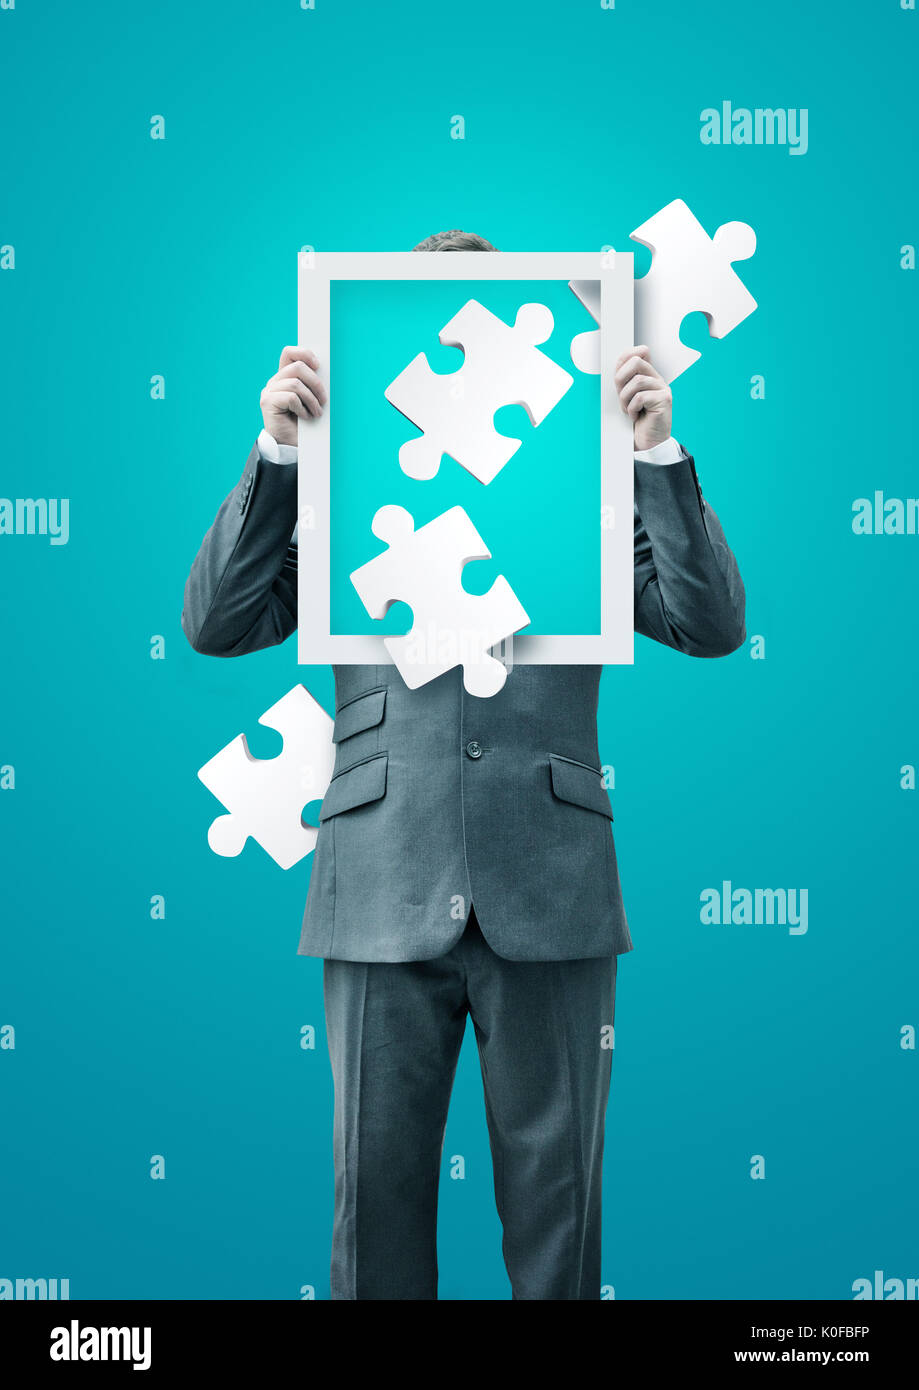 A puzzled businessman holding up a frame with puzzle pieces, business concept. - Stock Image